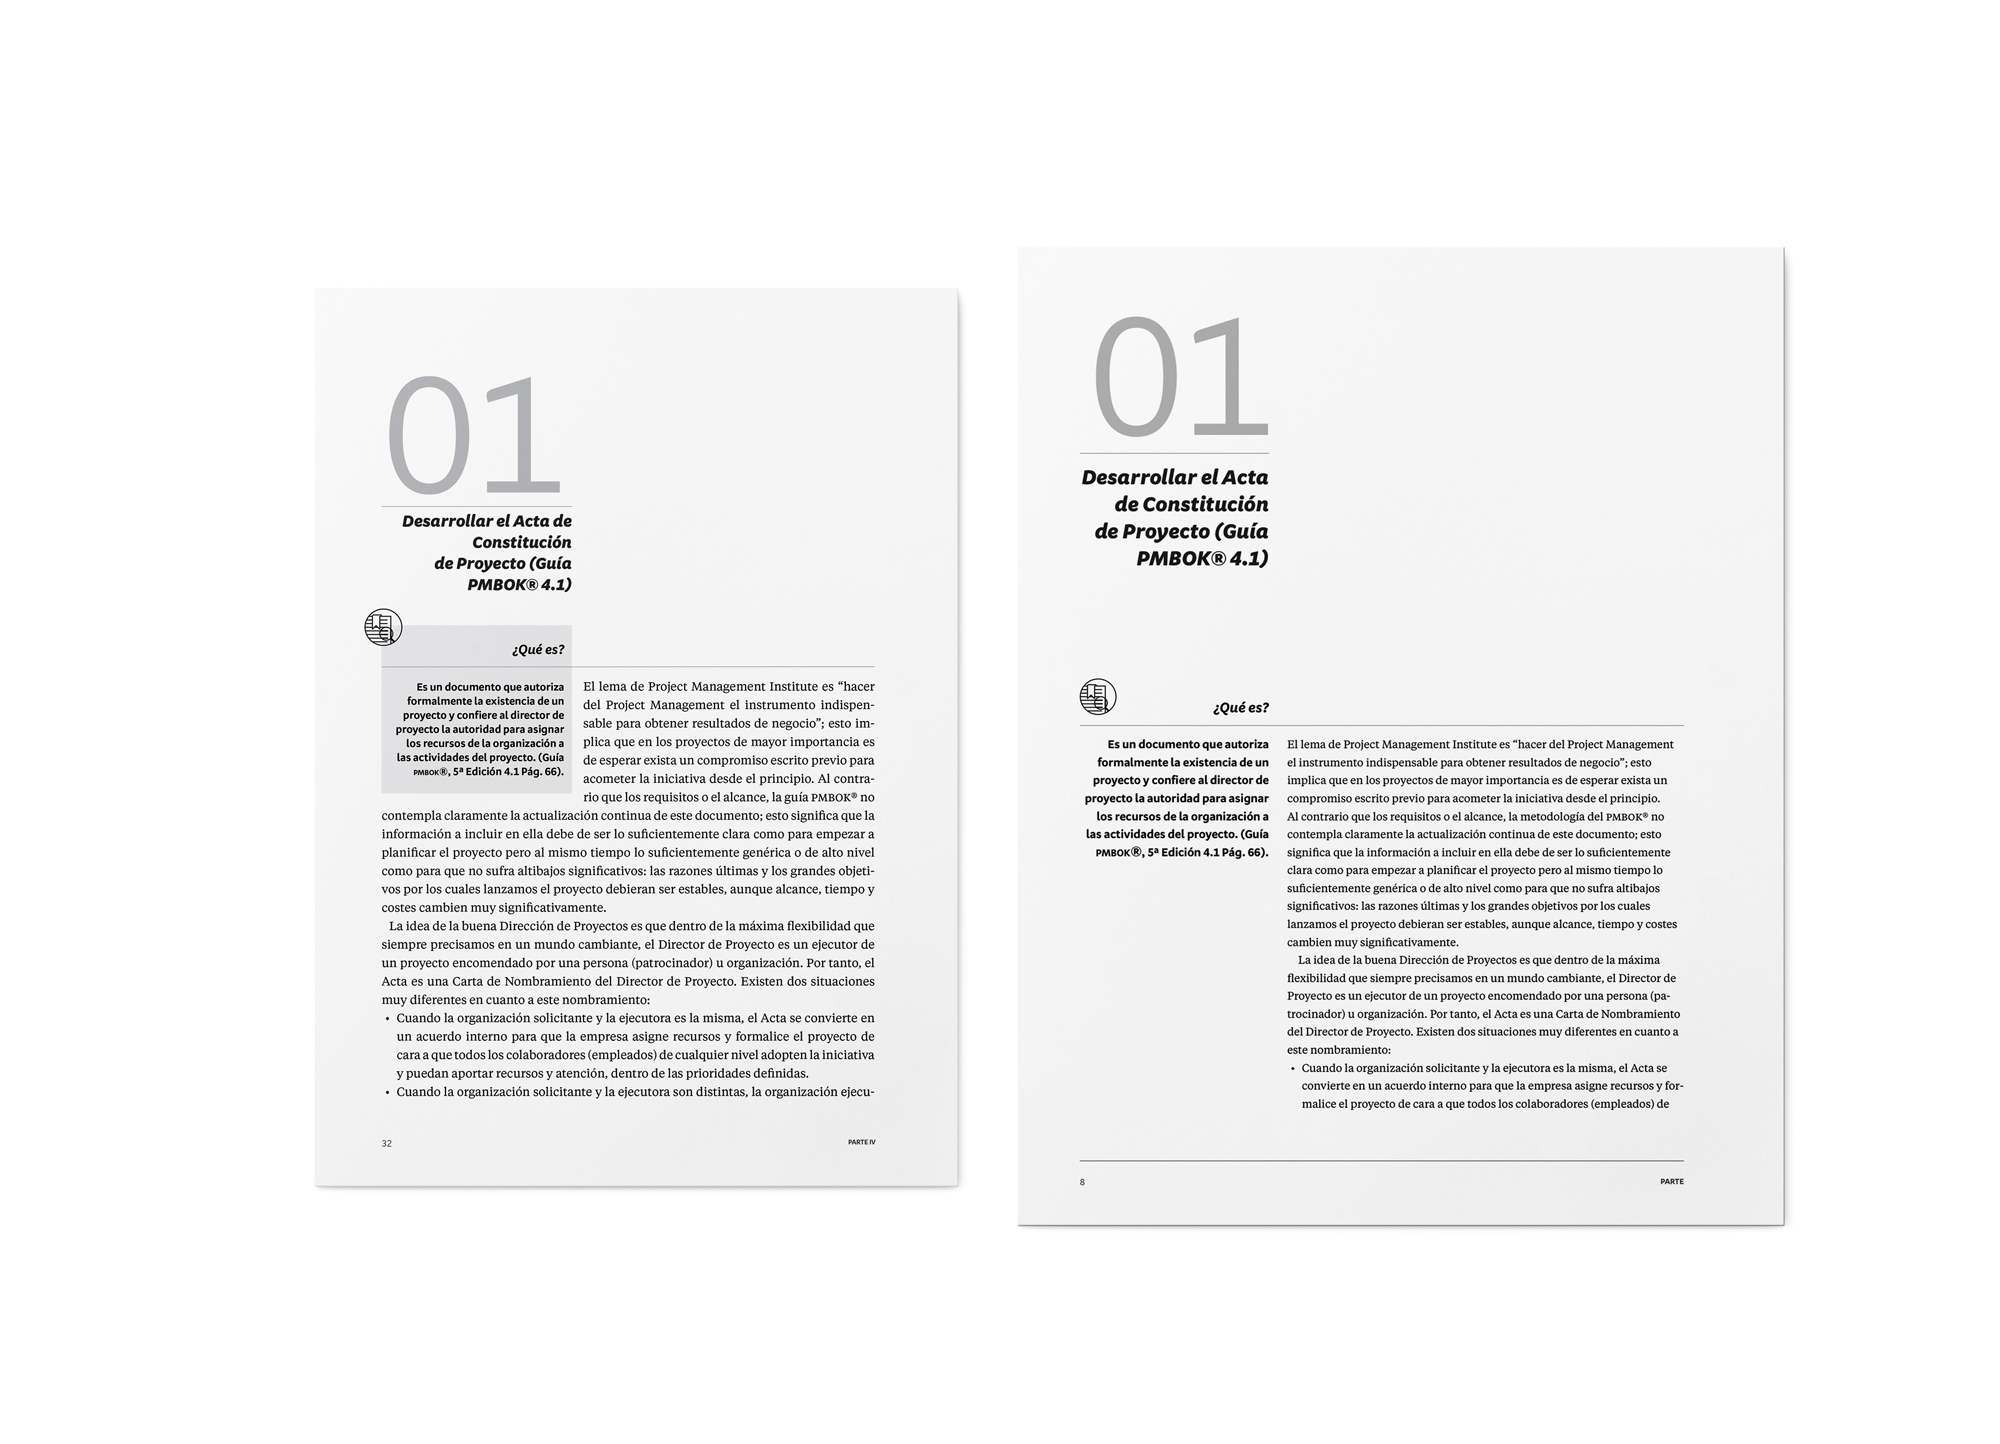 On the left, the published layout and size, compared to the version that was being developed before.